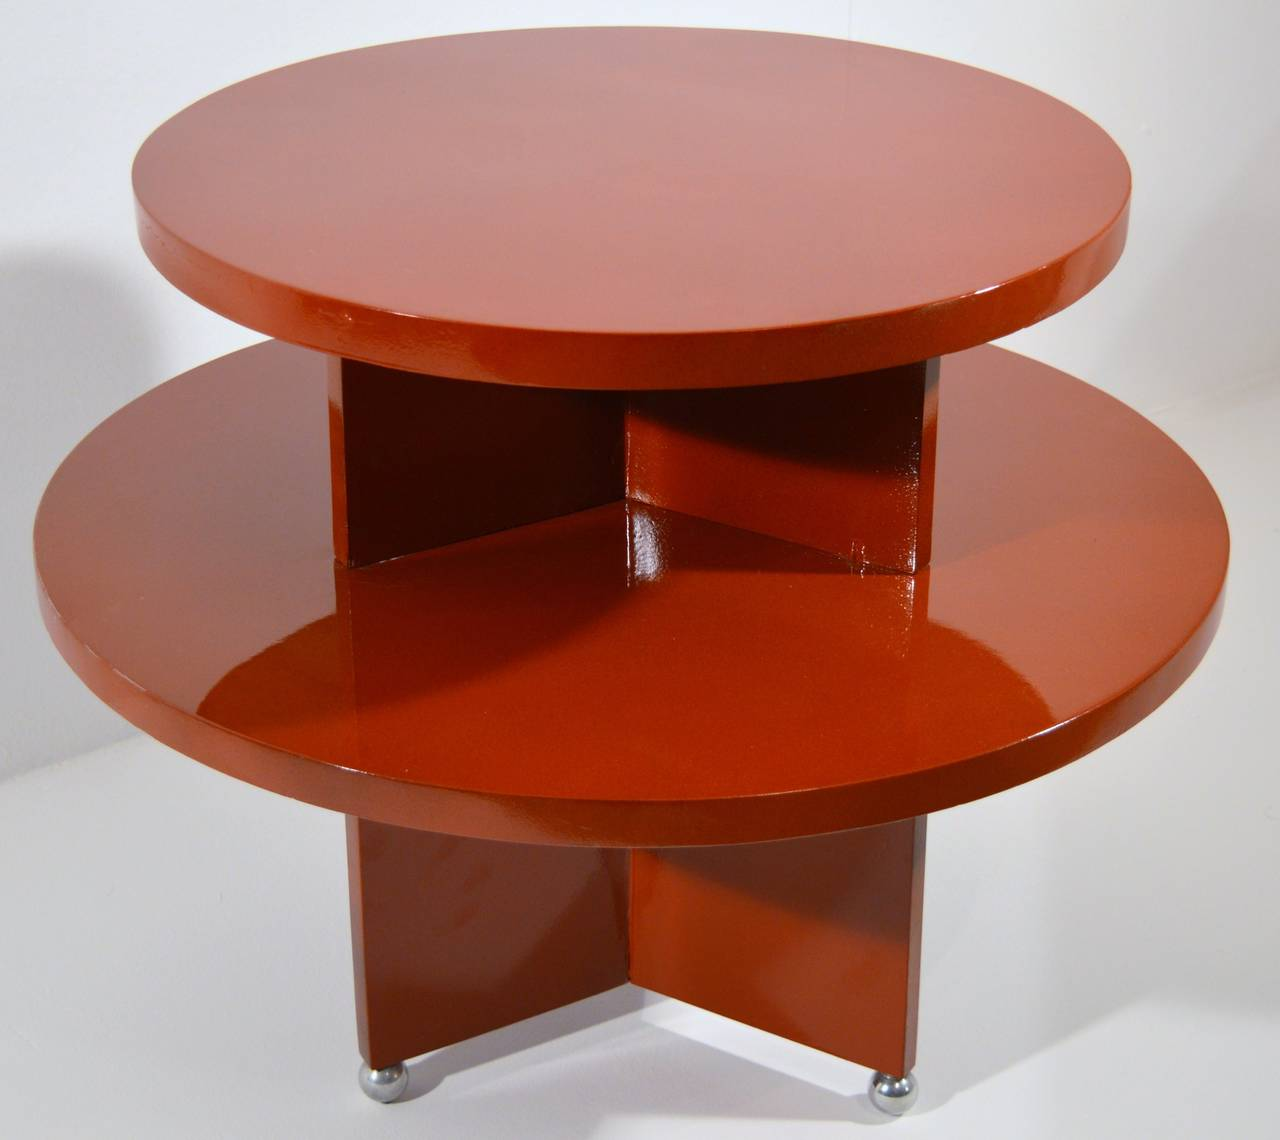 art deco red laquered coffee table on metal ball feet at 1stdibs. Black Bedroom Furniture Sets. Home Design Ideas